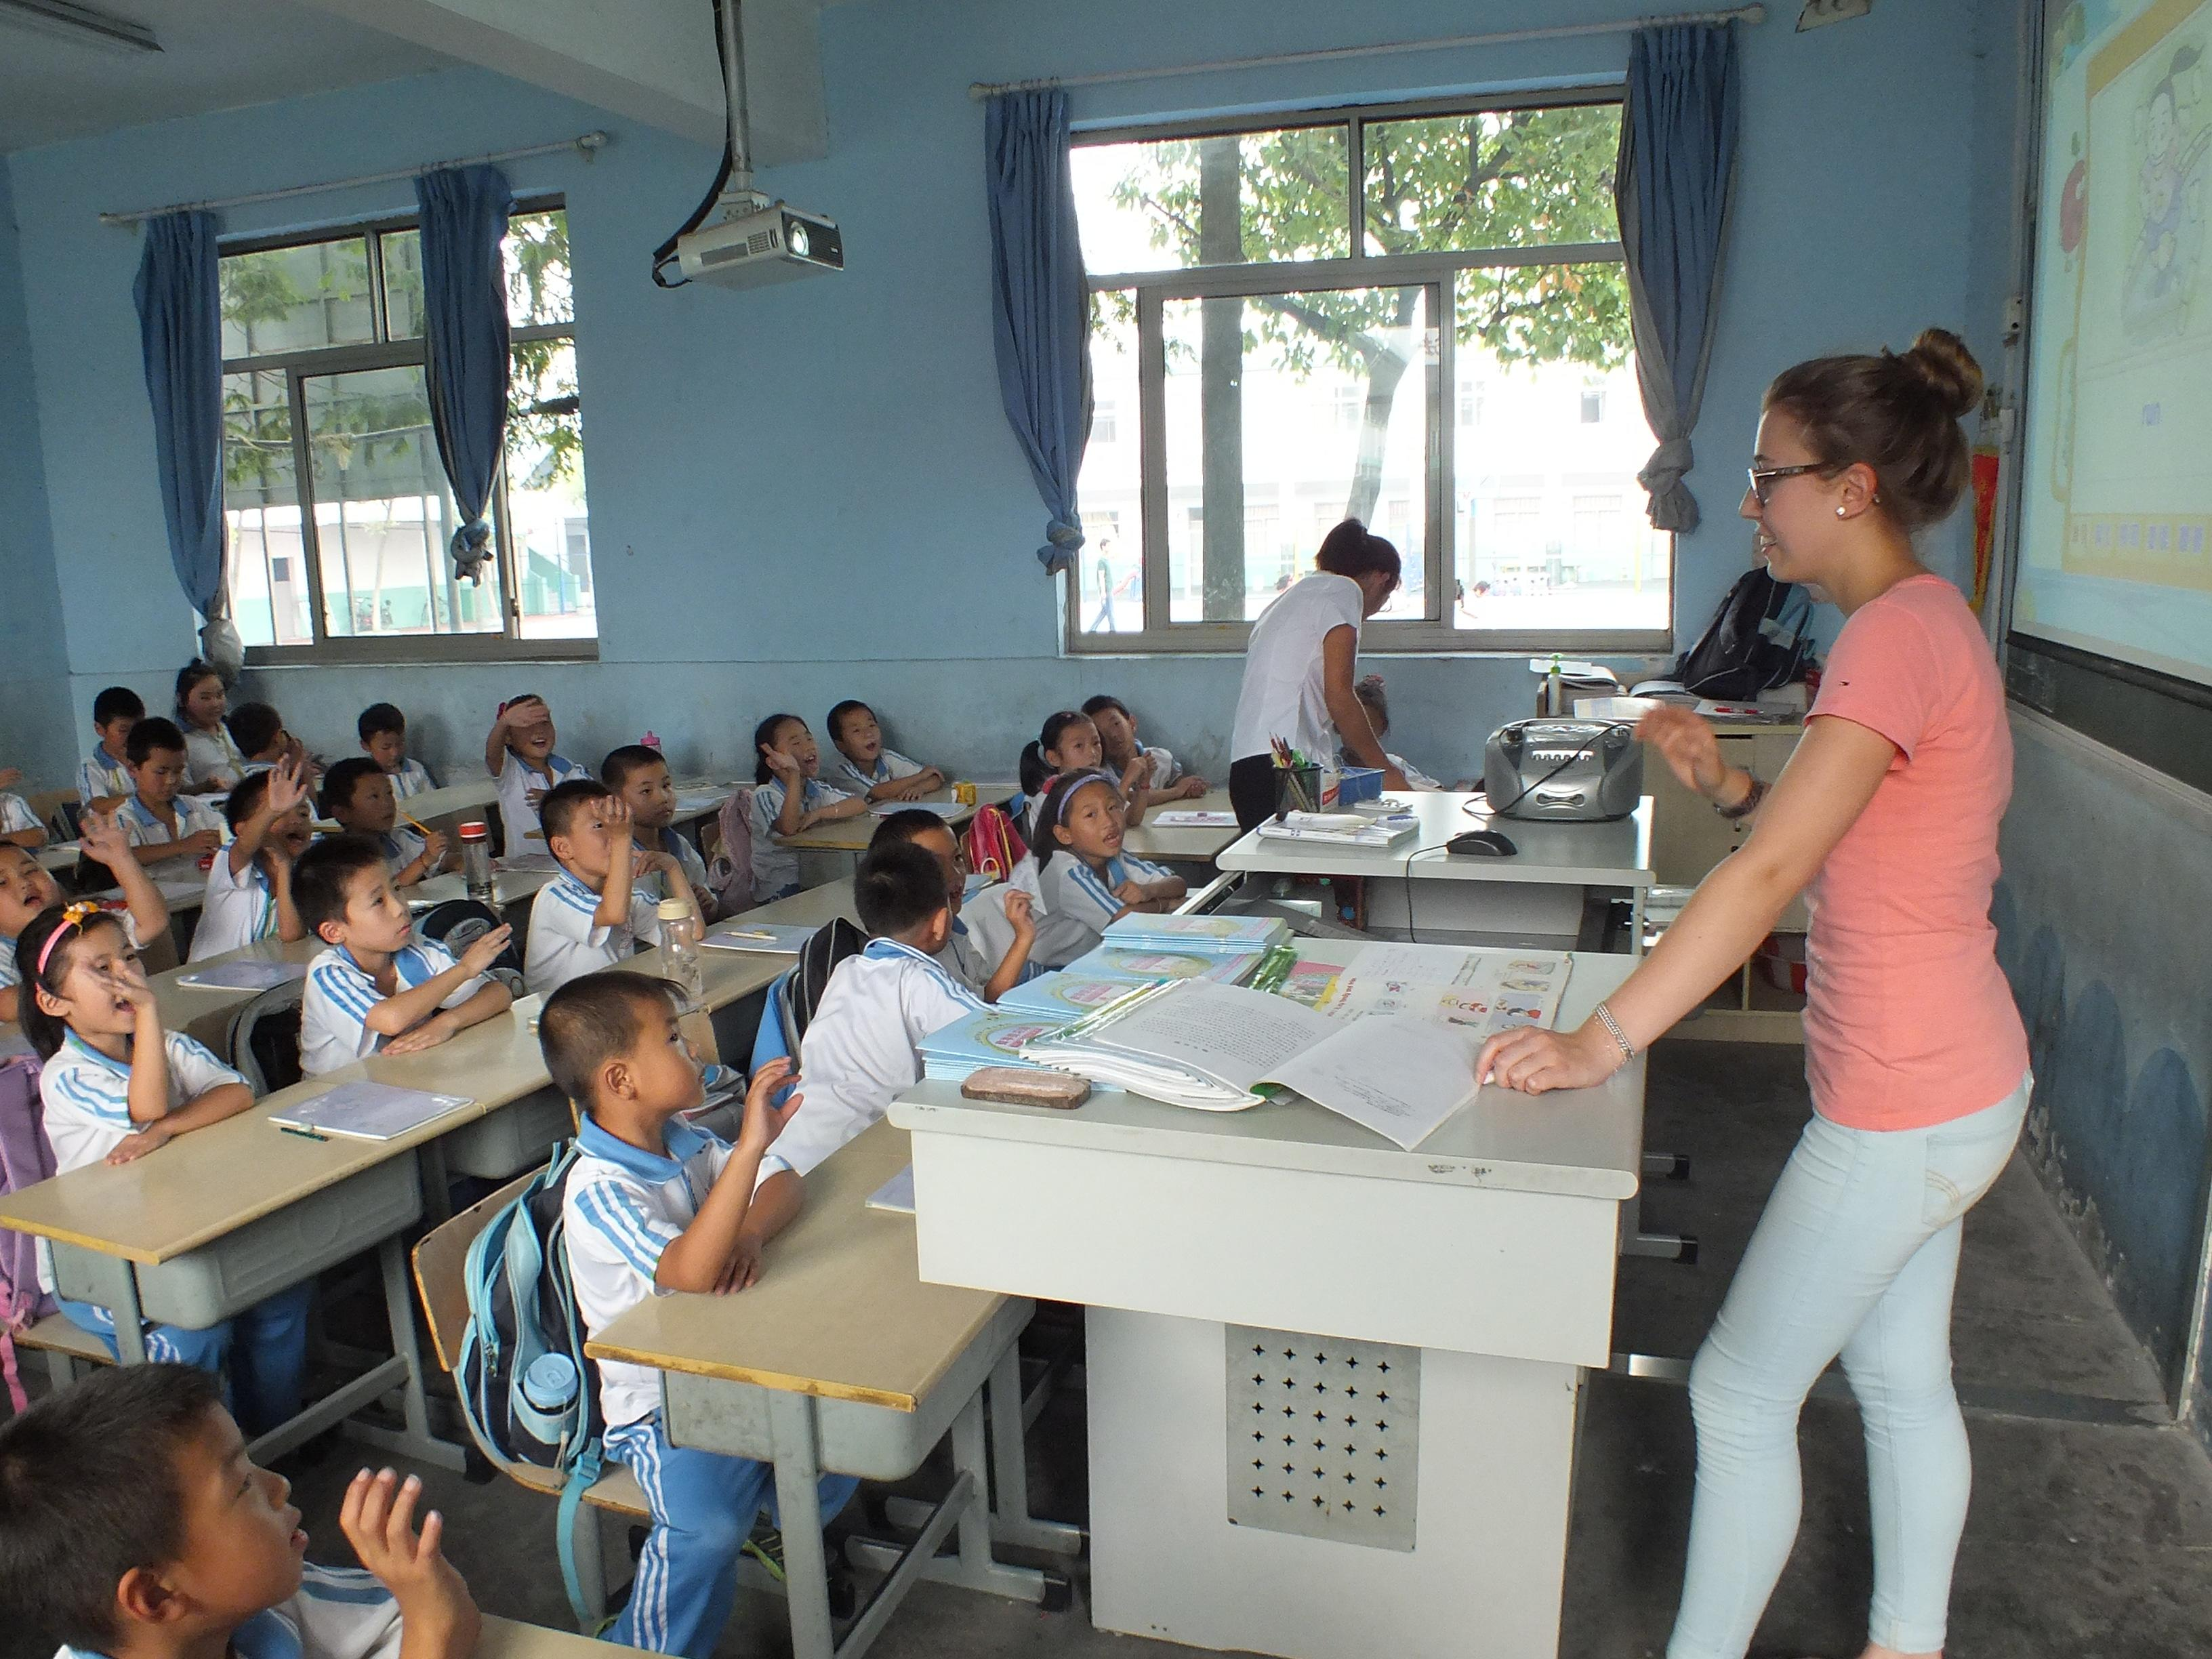 Young students put up their hands to answer the Projects Abroad volunteer teaching English in China